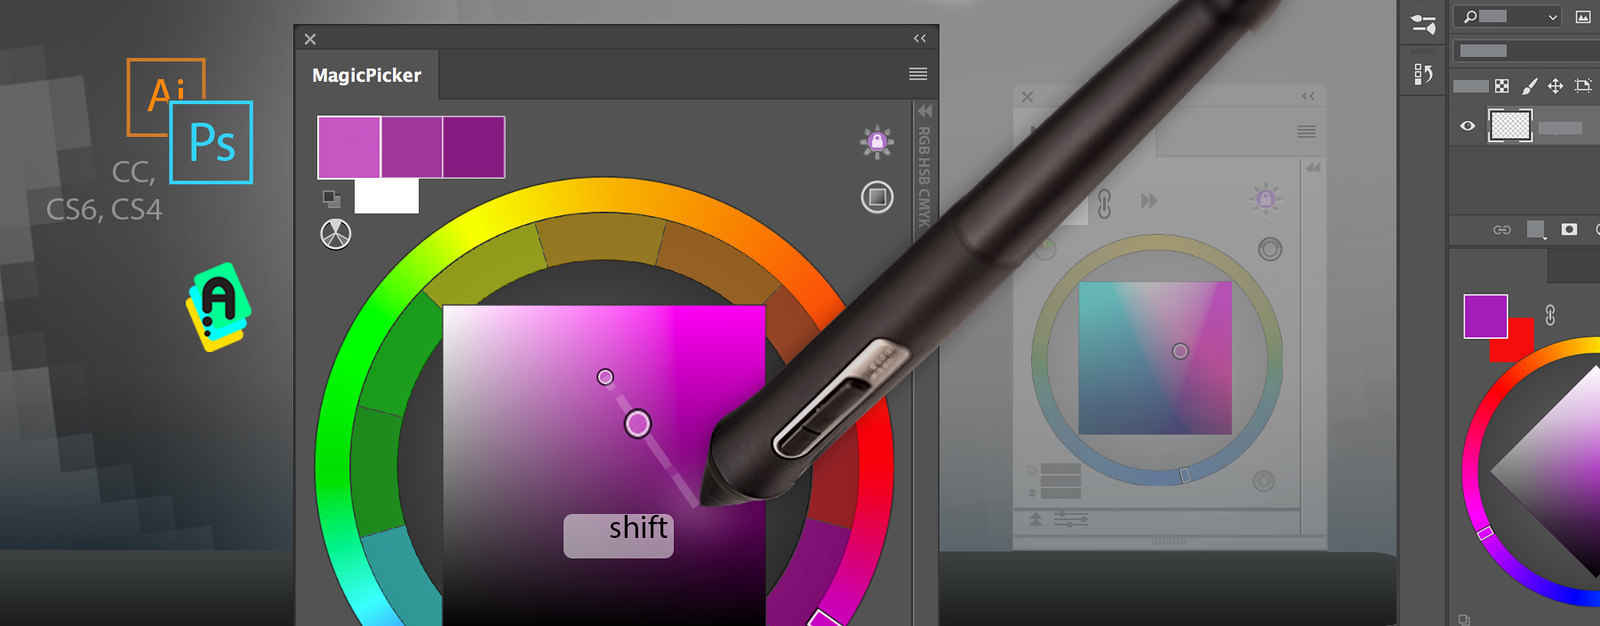 Best Laptops for Graphics Design: Photoshop Interface